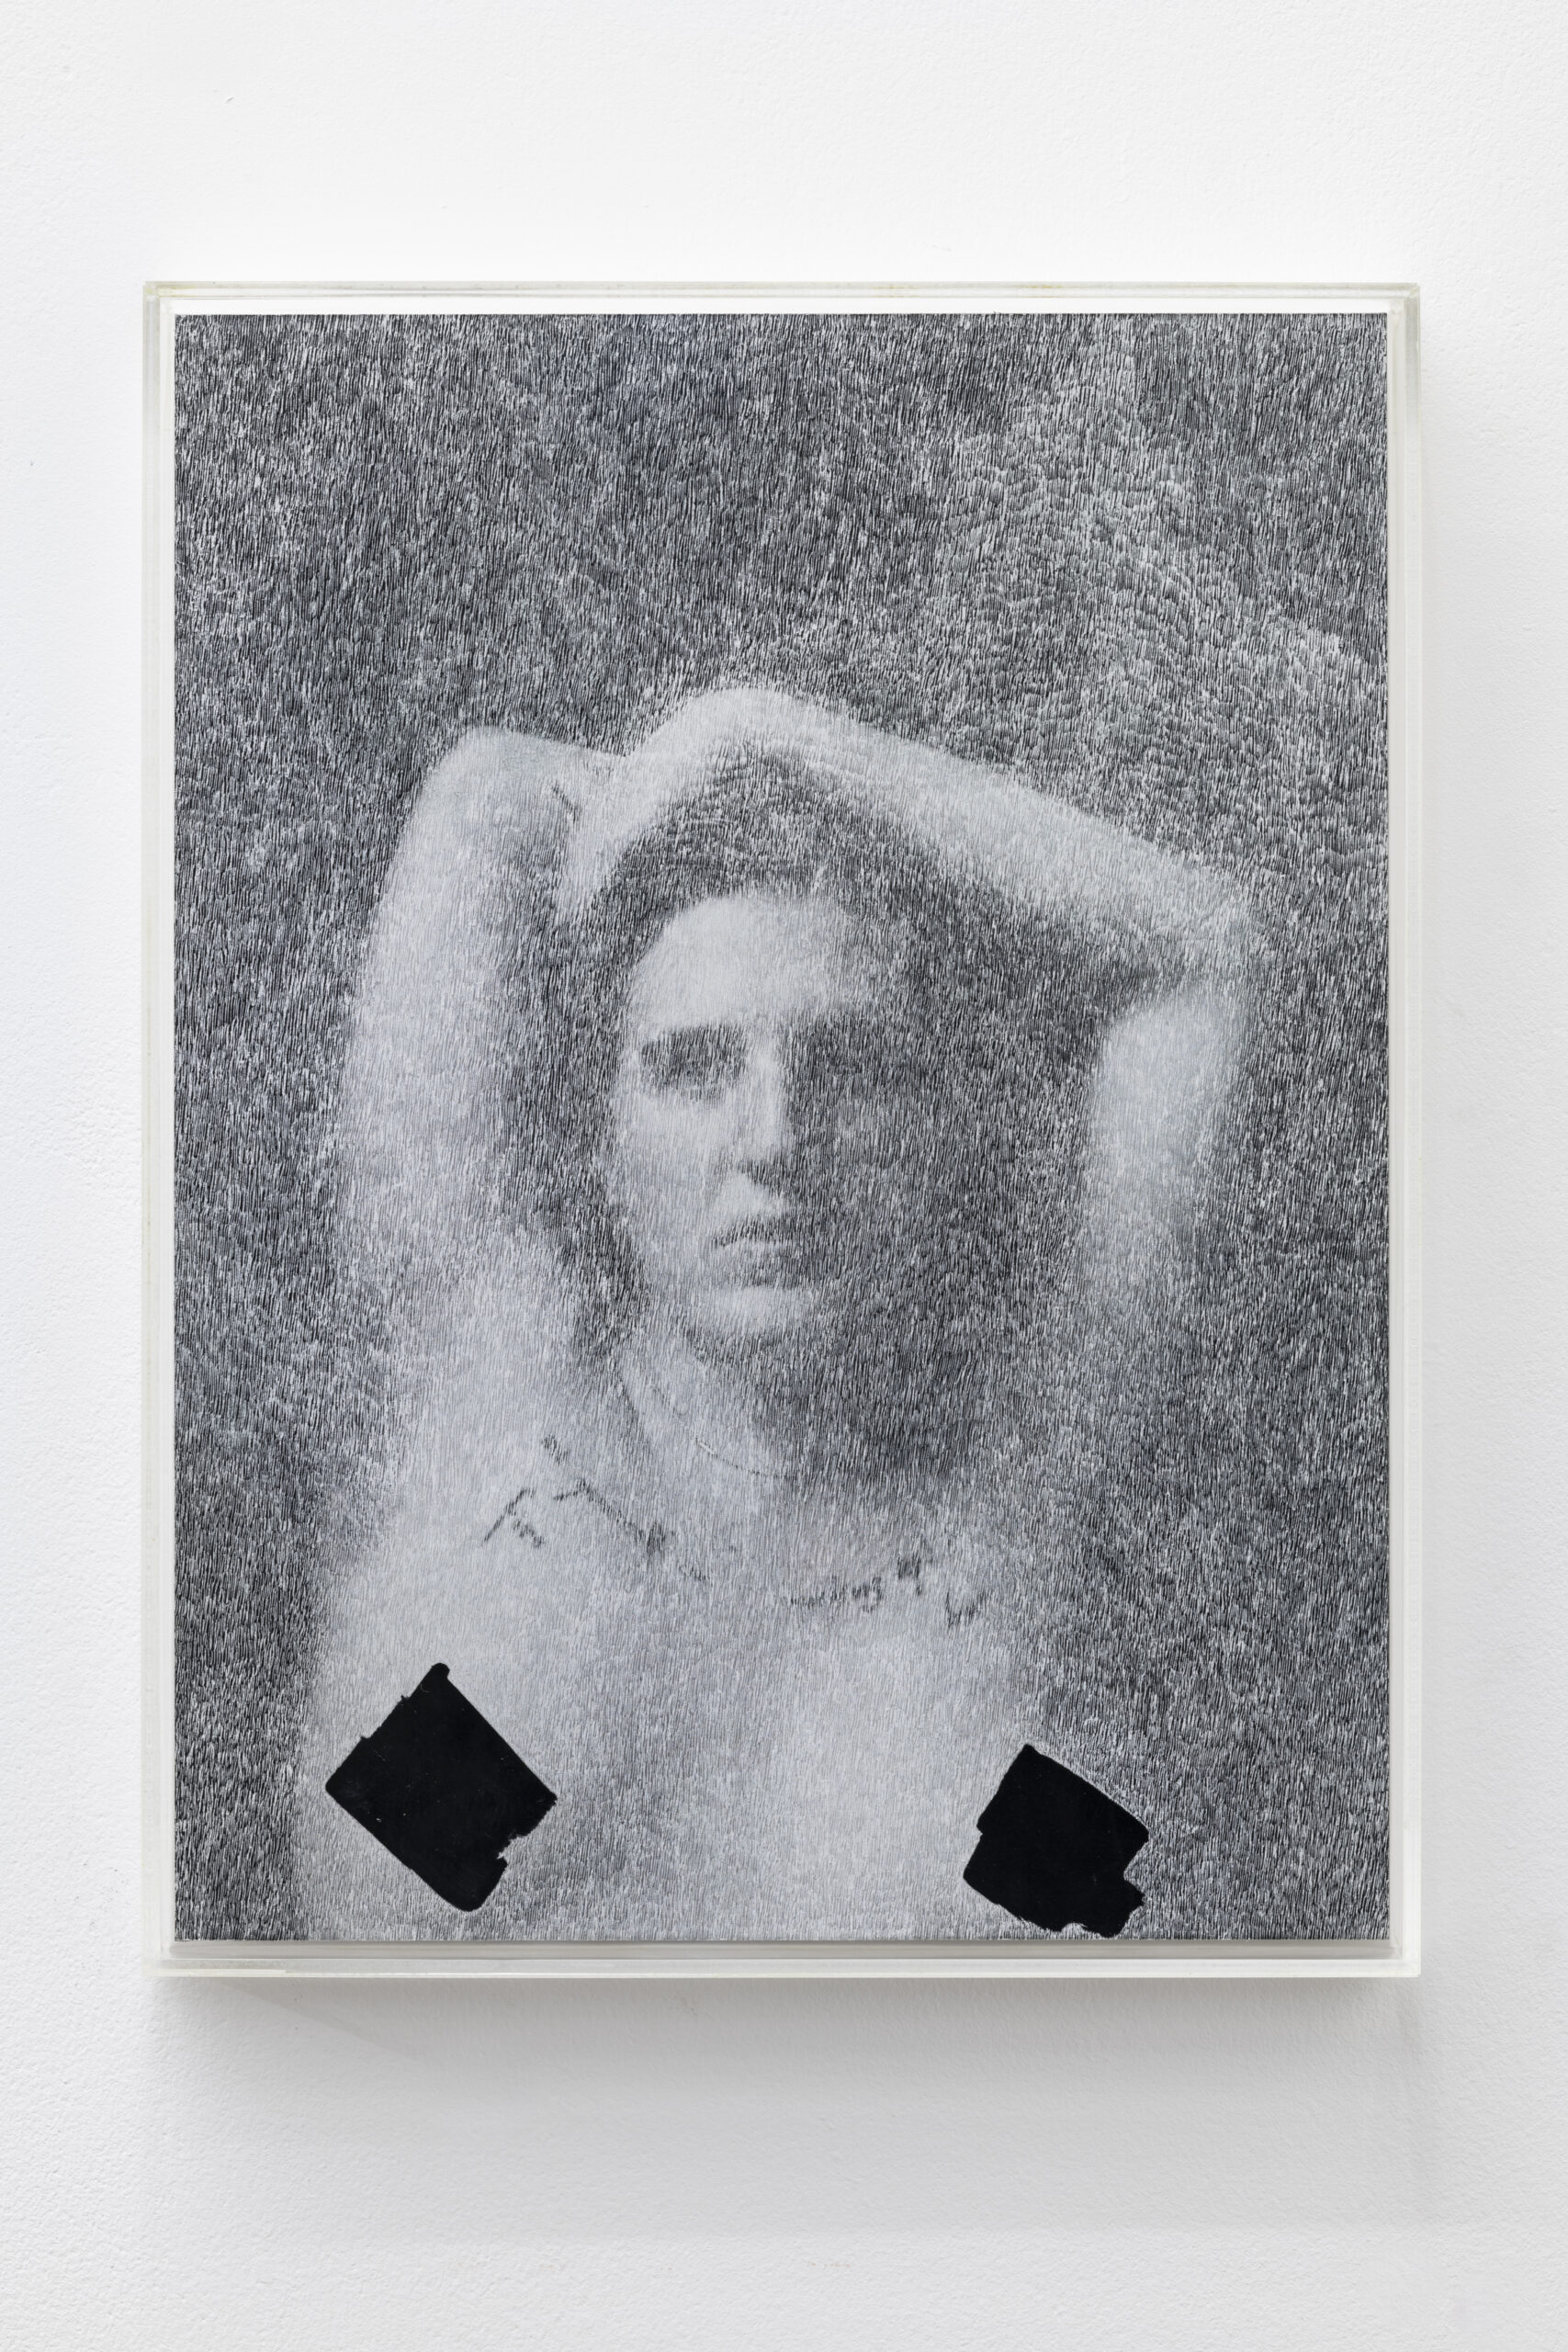 William Mackrell: Cover Up (Set yourself on fire) 2020 Etching on magazine print mounted on aluminium Mounted in UV acrylic case 30 cm x 22.5 cm